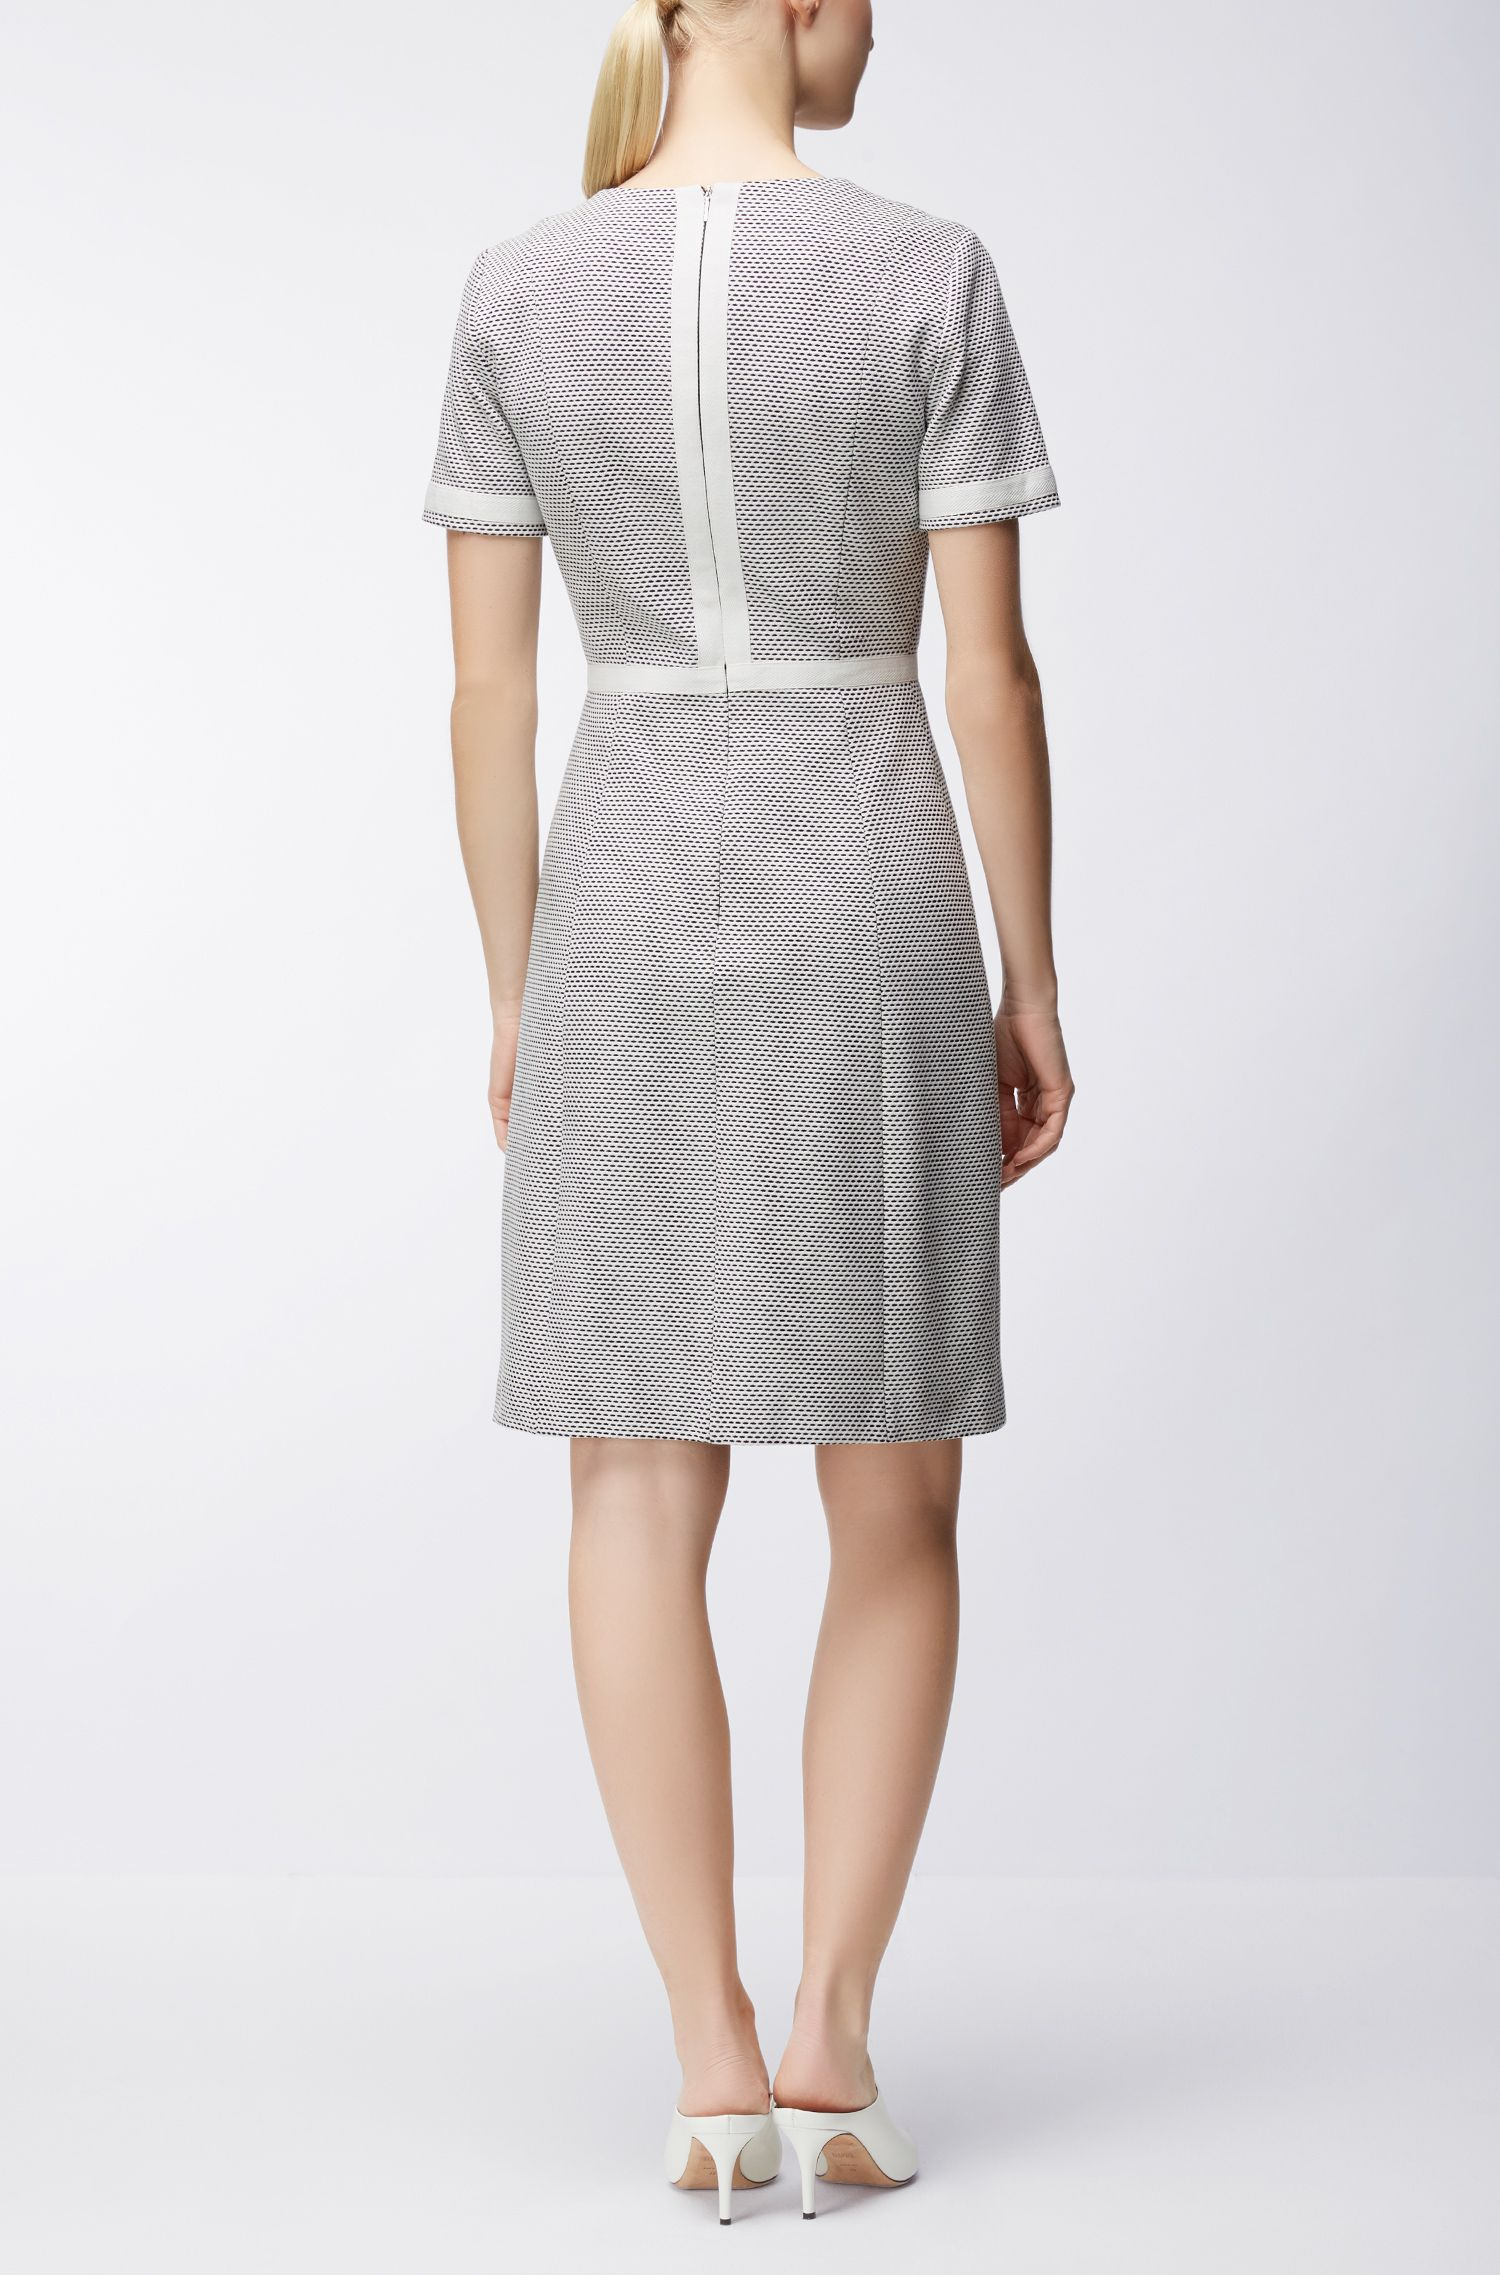 V-neck dress in structured cotton jersey